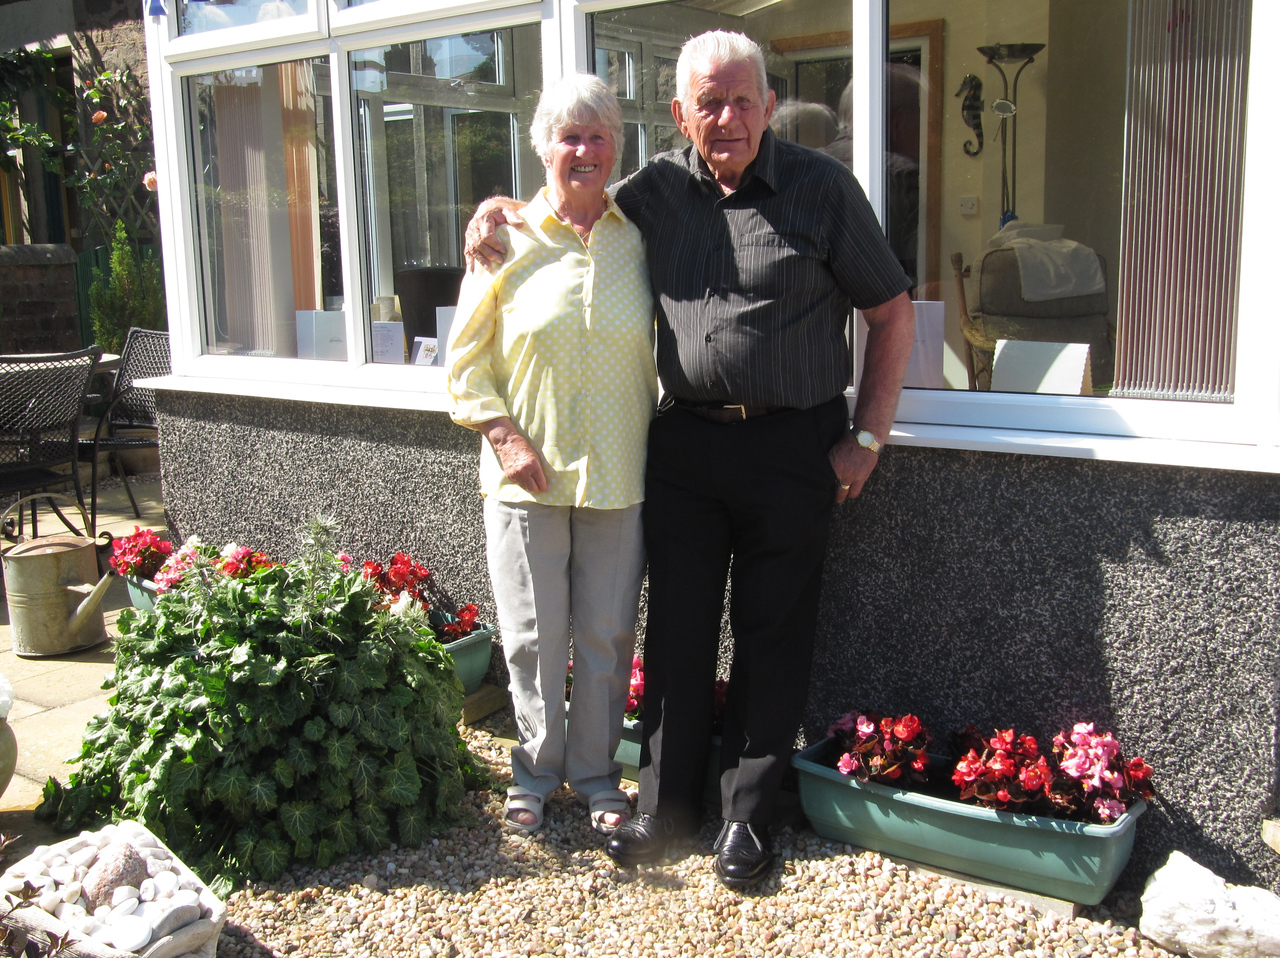 Janet Eddie Scotland Granny Grandad Golden Wedding July 2014